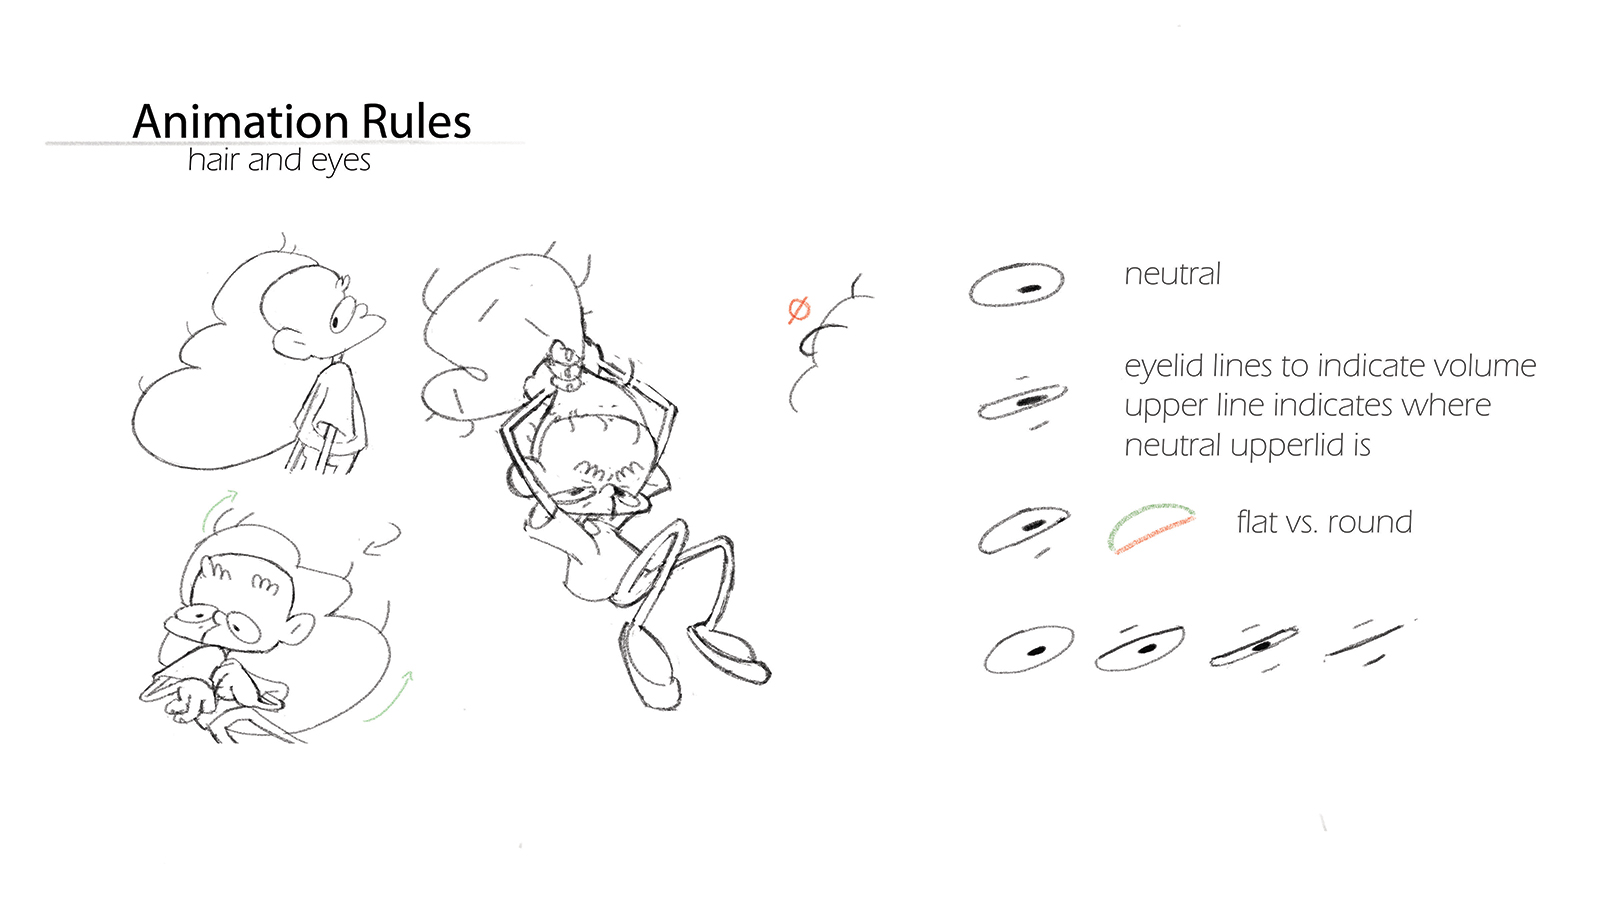 Animation rules for character's facial features in Flap.